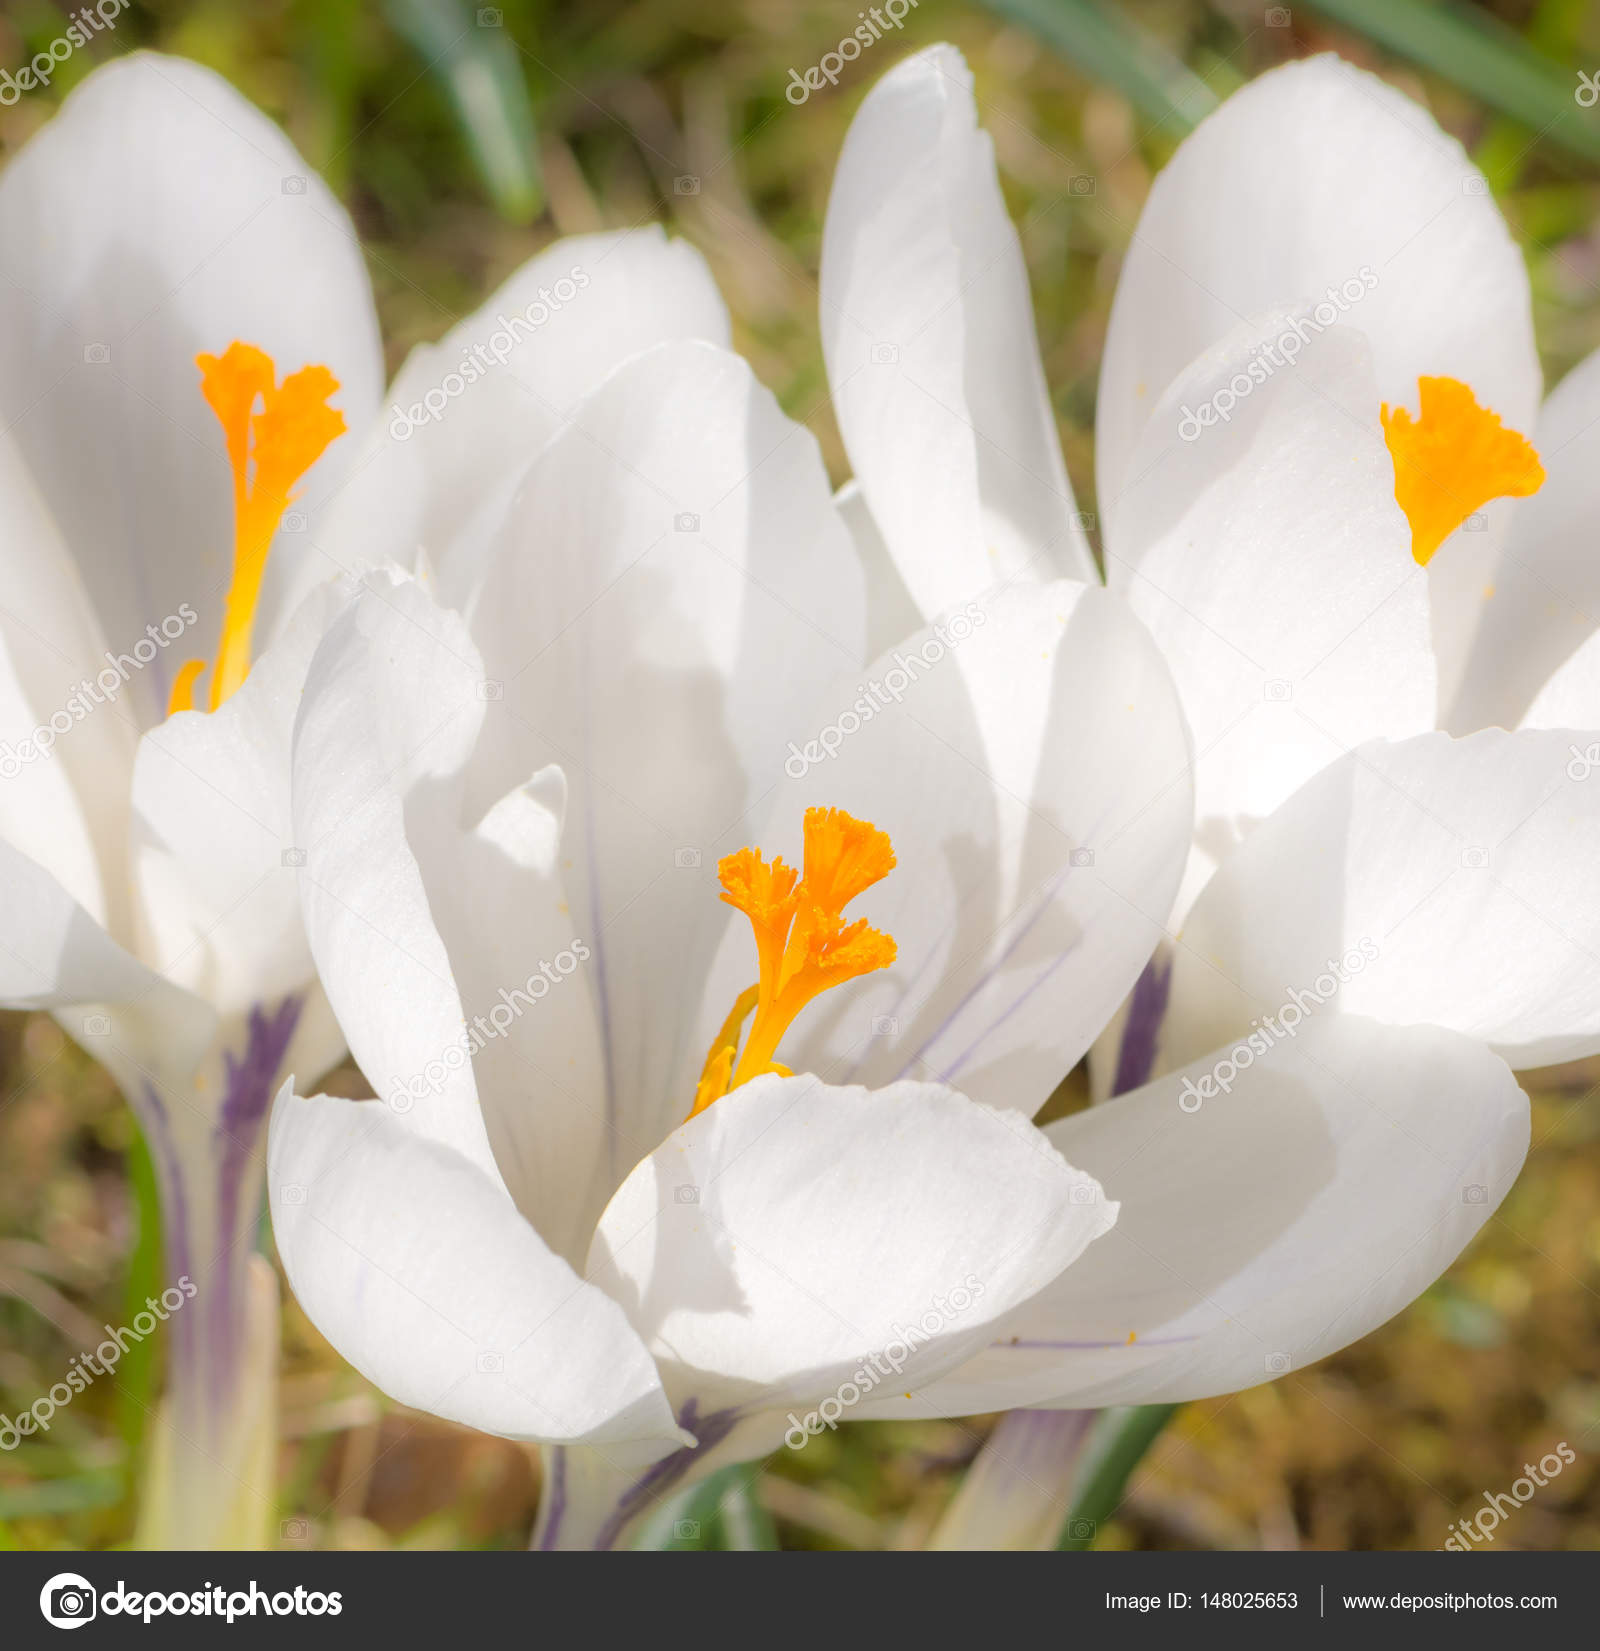 White crocus flower blossoms stock photo manfredxy 148025653 white crocus flower blossoms stock photo mightylinksfo